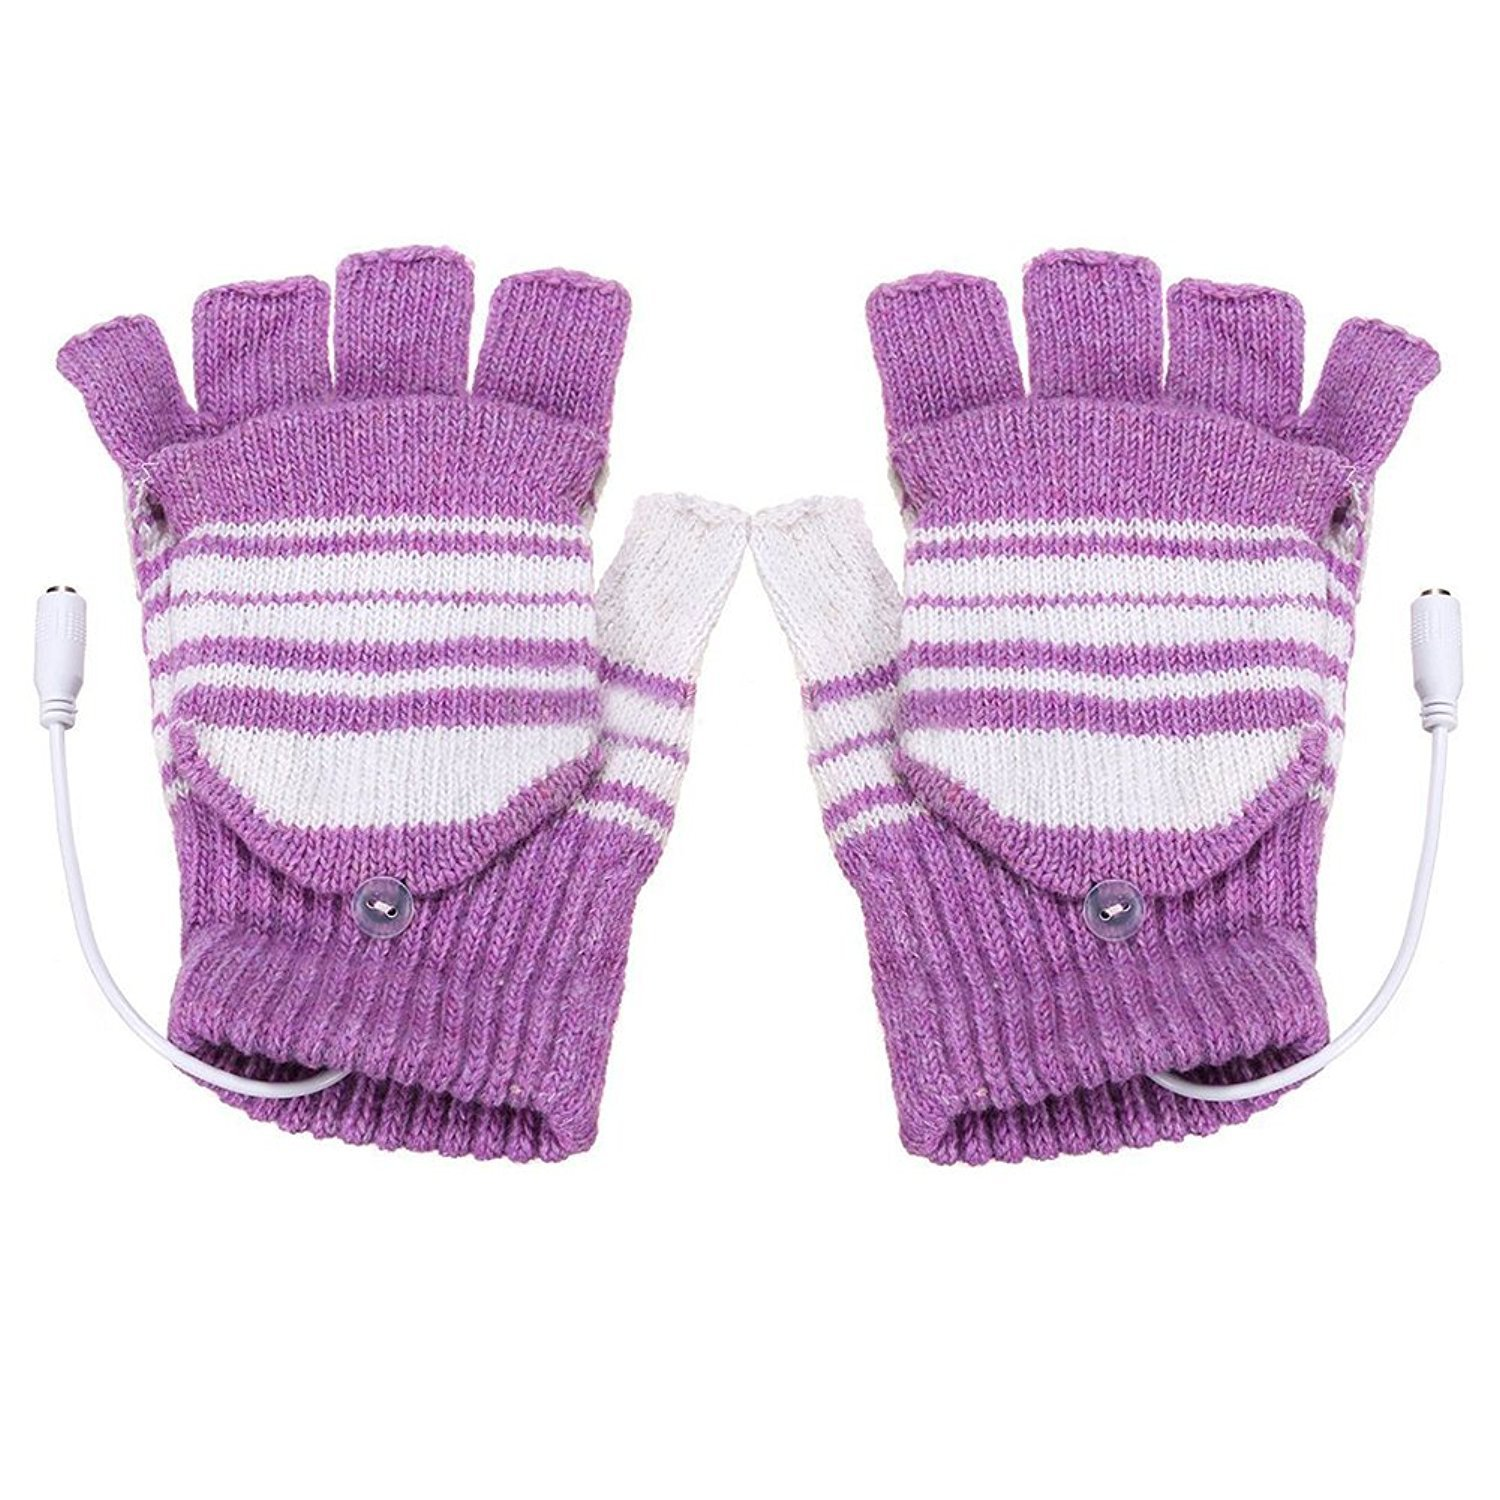 TOOGOO(R) 5V USB Powered Heated Winter Hand Warmer Half Finger Washable Gloves Xmas Gift, Purple